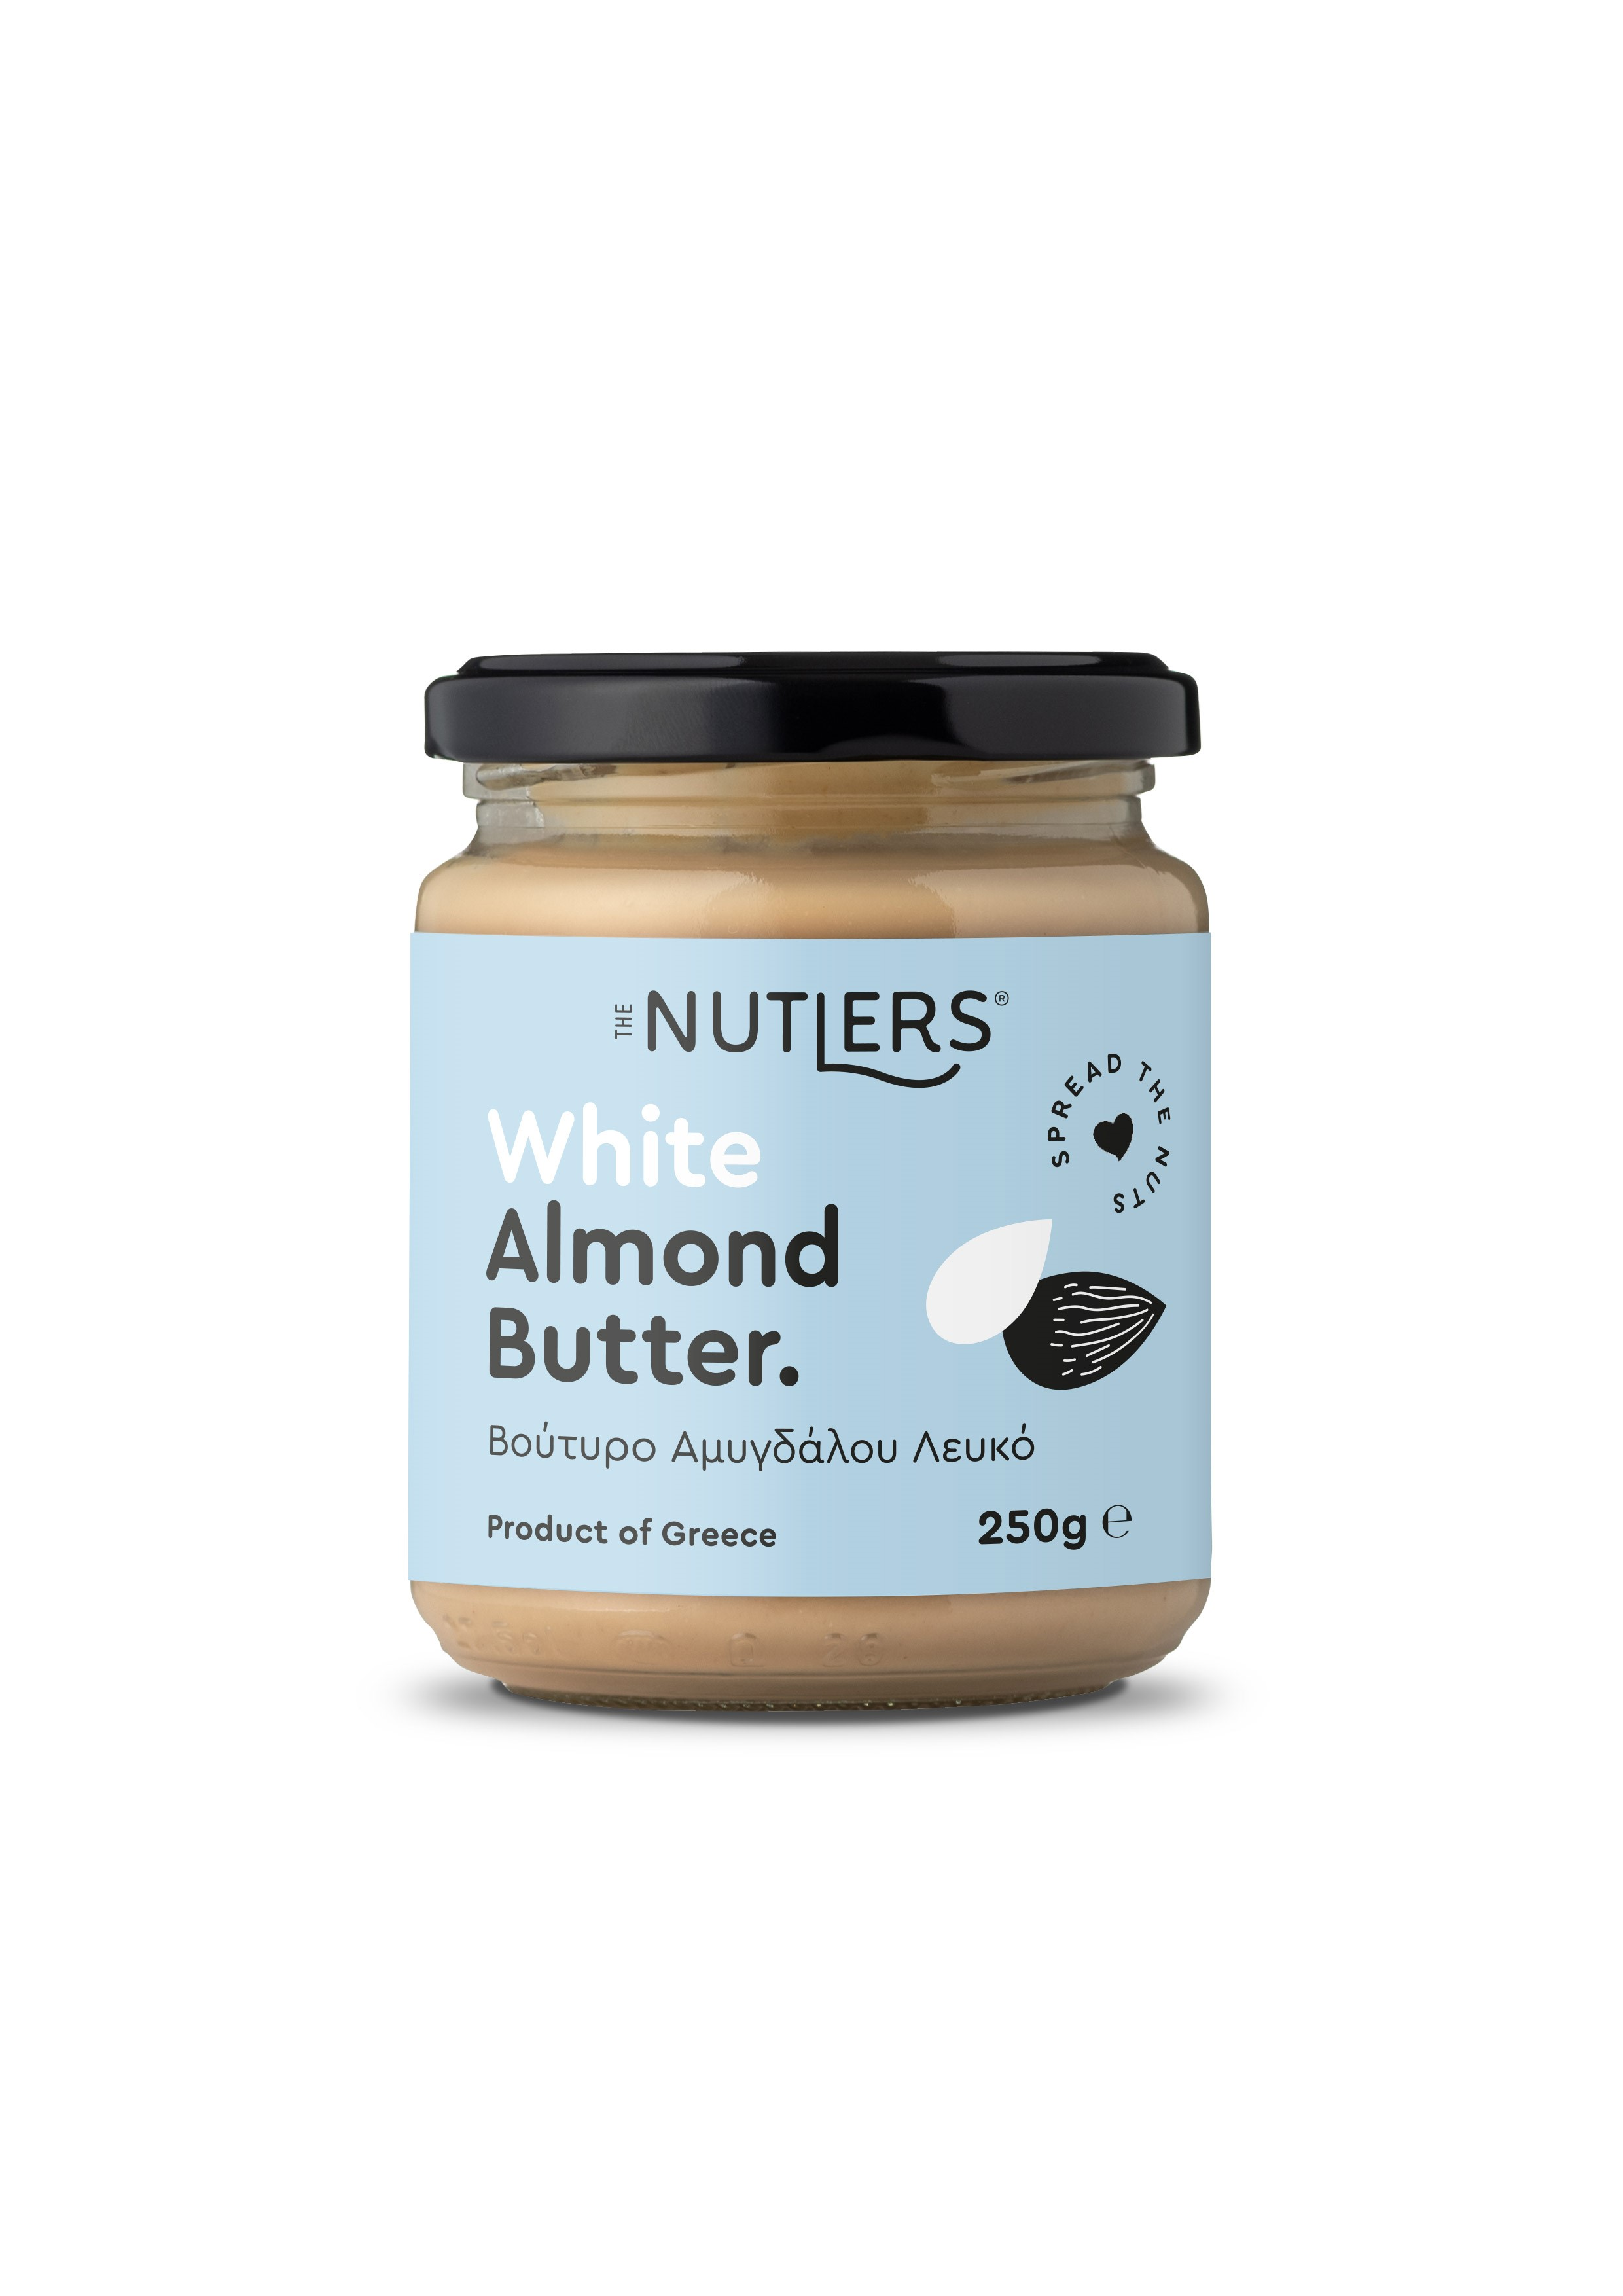 The Nutlers WHITE ALMOND BUTTER